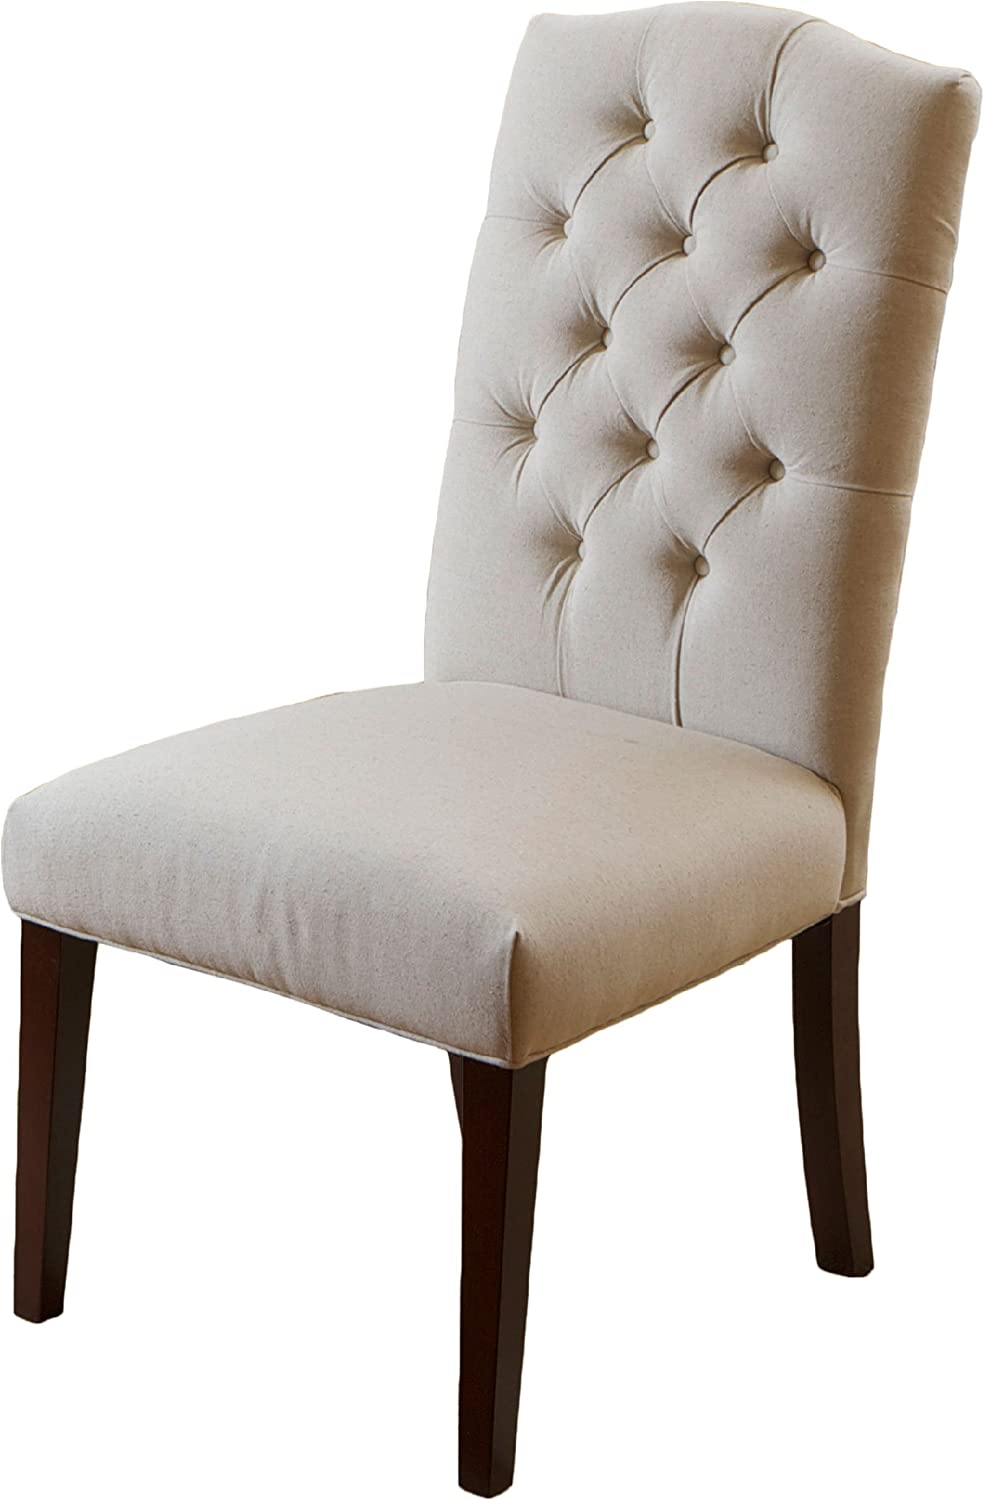 Christopher Knight Home Clark Elegant Upholstered Dining Chairs w Button Tufted Backrest Set of 2 , beige